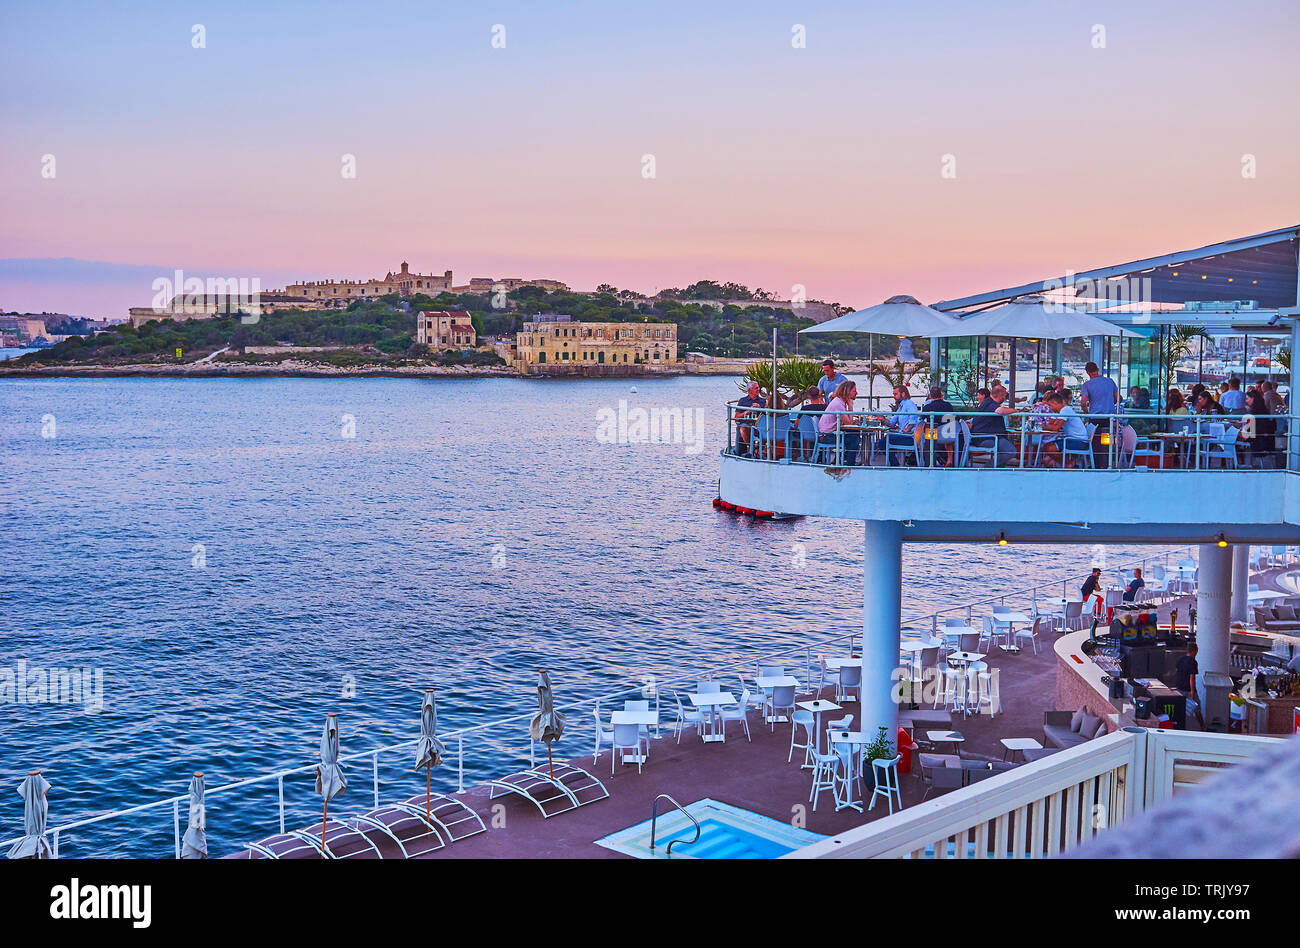 SLIEMA, MALTA - JUNE 19, 2018: The crowded open air terrace of the coastal restaurant on Tigne Point peninsula with a view on Valletta Northern Harbor - Stock Image